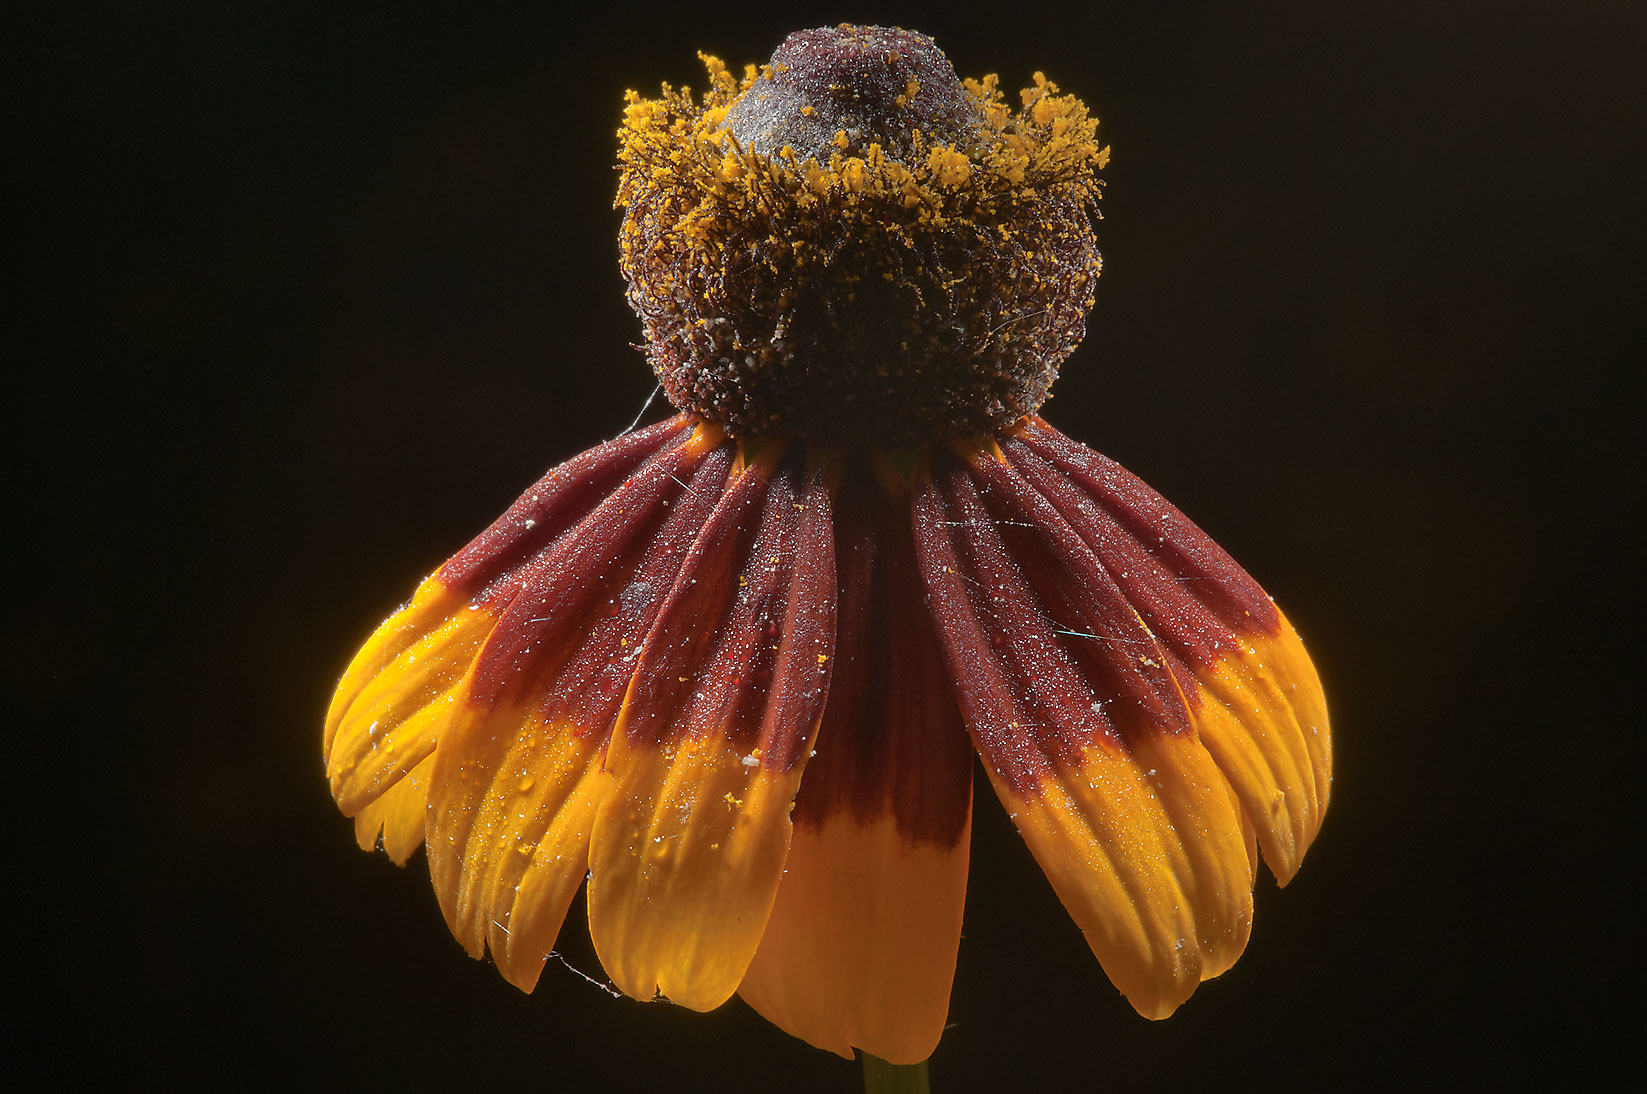 Odd shaped flower of black-eyed susan (Rudbeckia...Creek Park. College Station, Texas